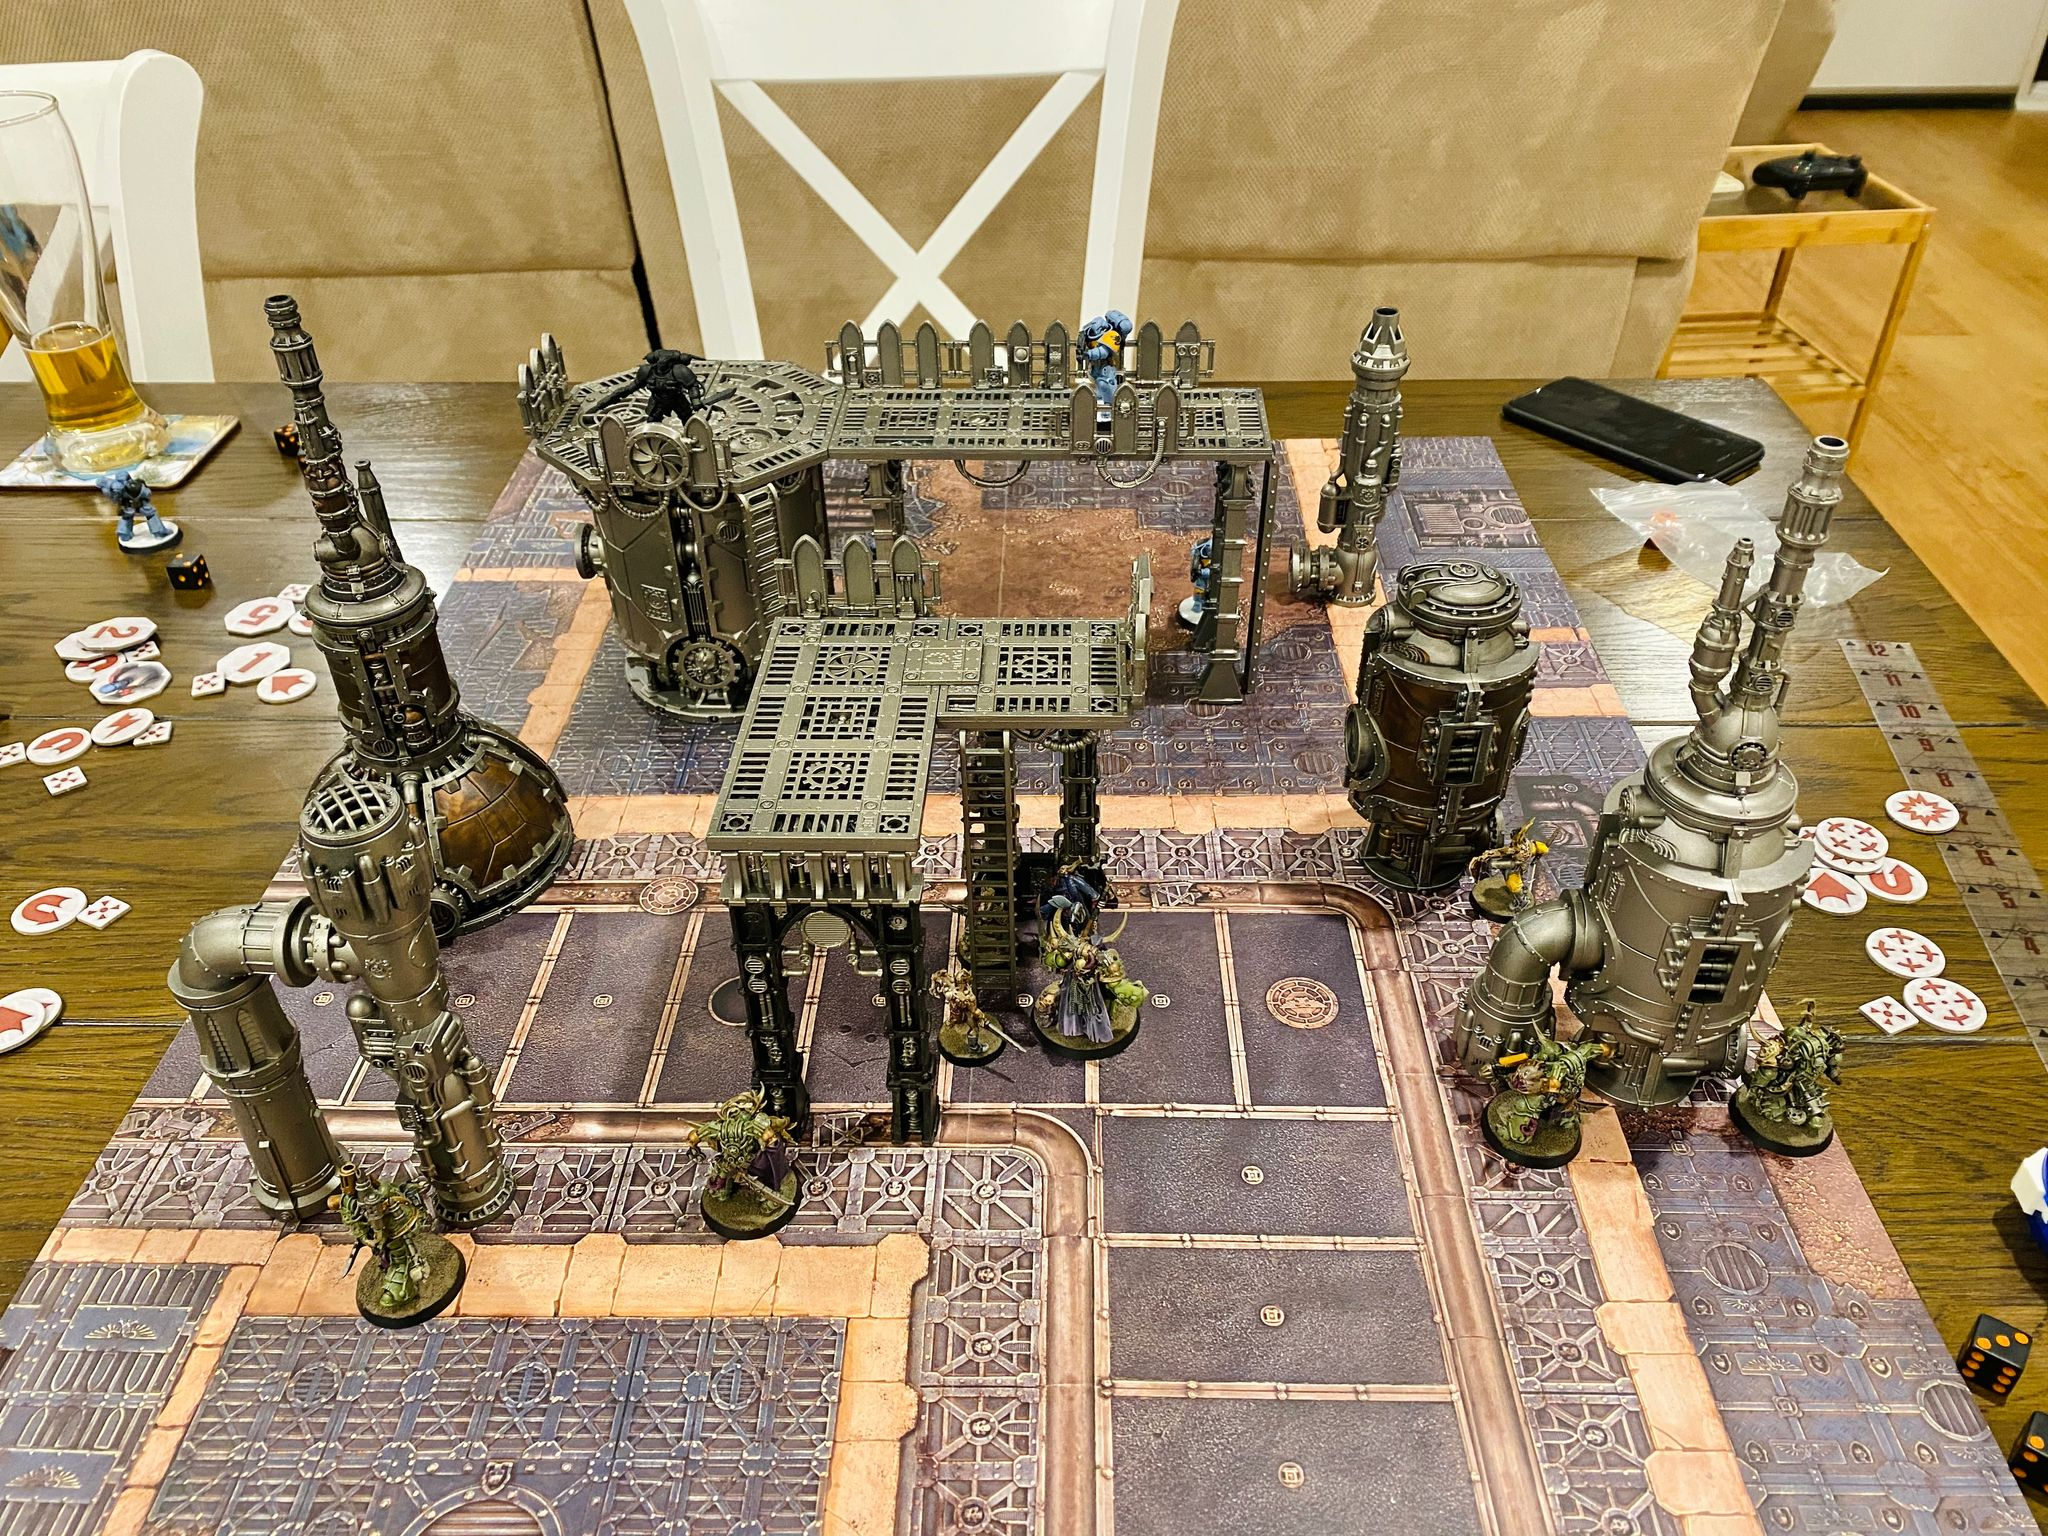 A photo of a table with the current Kill Team box set terrain set up on it (very industrial, lots of tall metal-looking structures), with Death Guard facing off against Space Wolves.